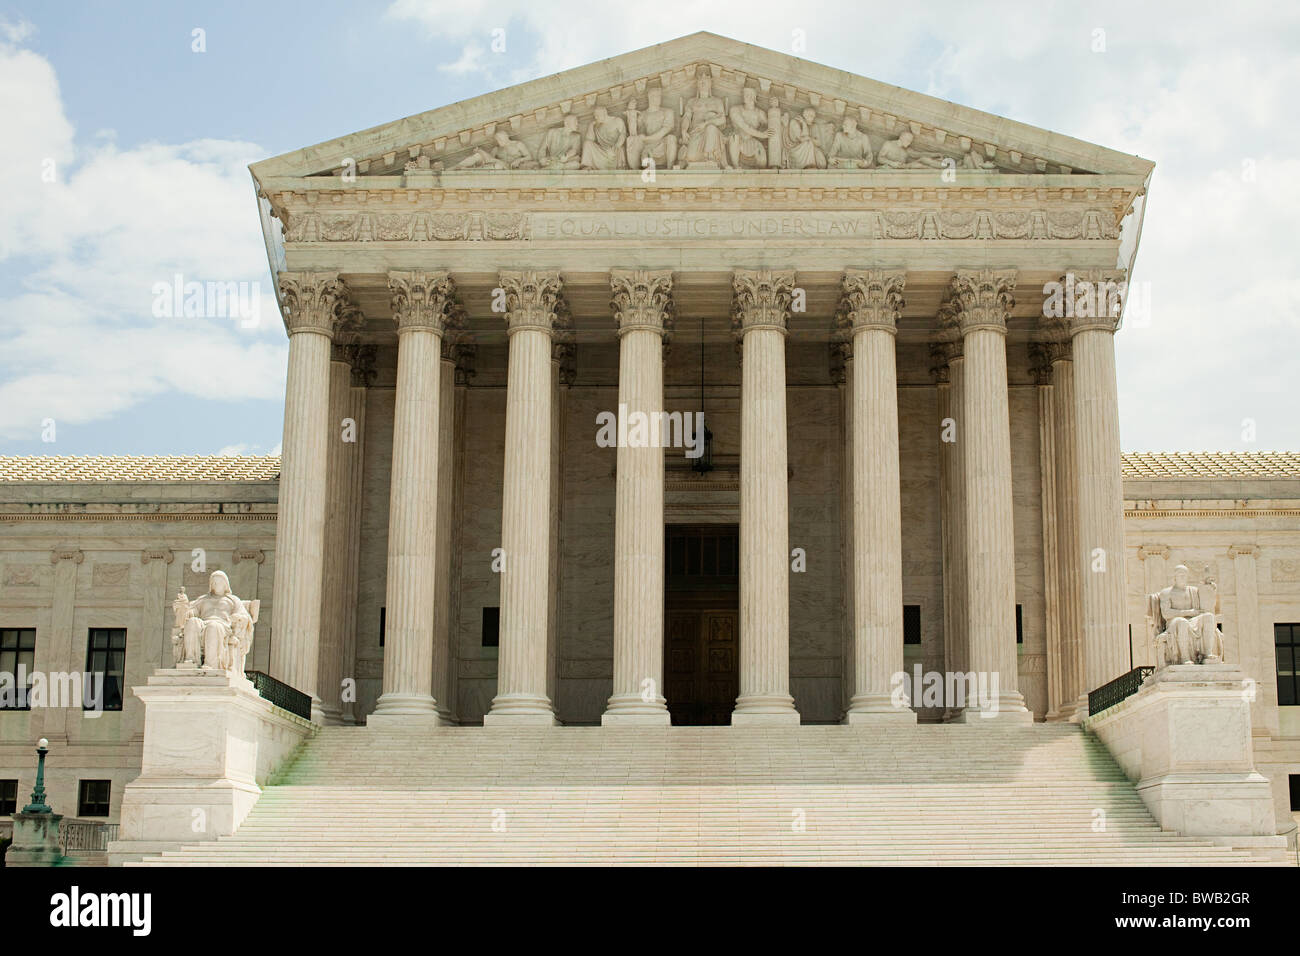 US supreme court building, Washington DC, USA - Stock Image